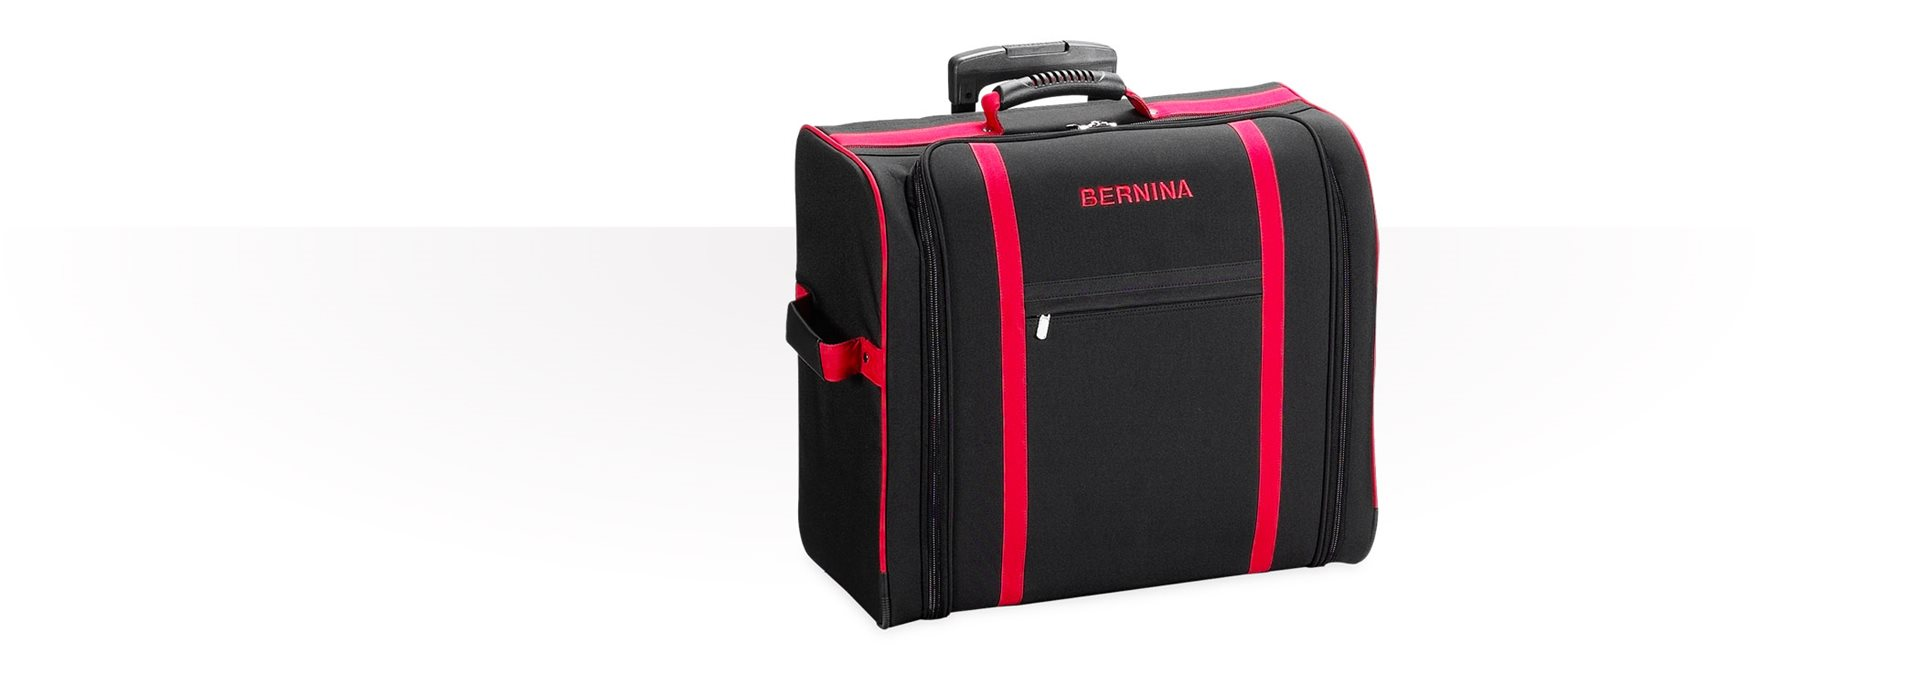 Picture: Embroidery module suitcase for suitcase system